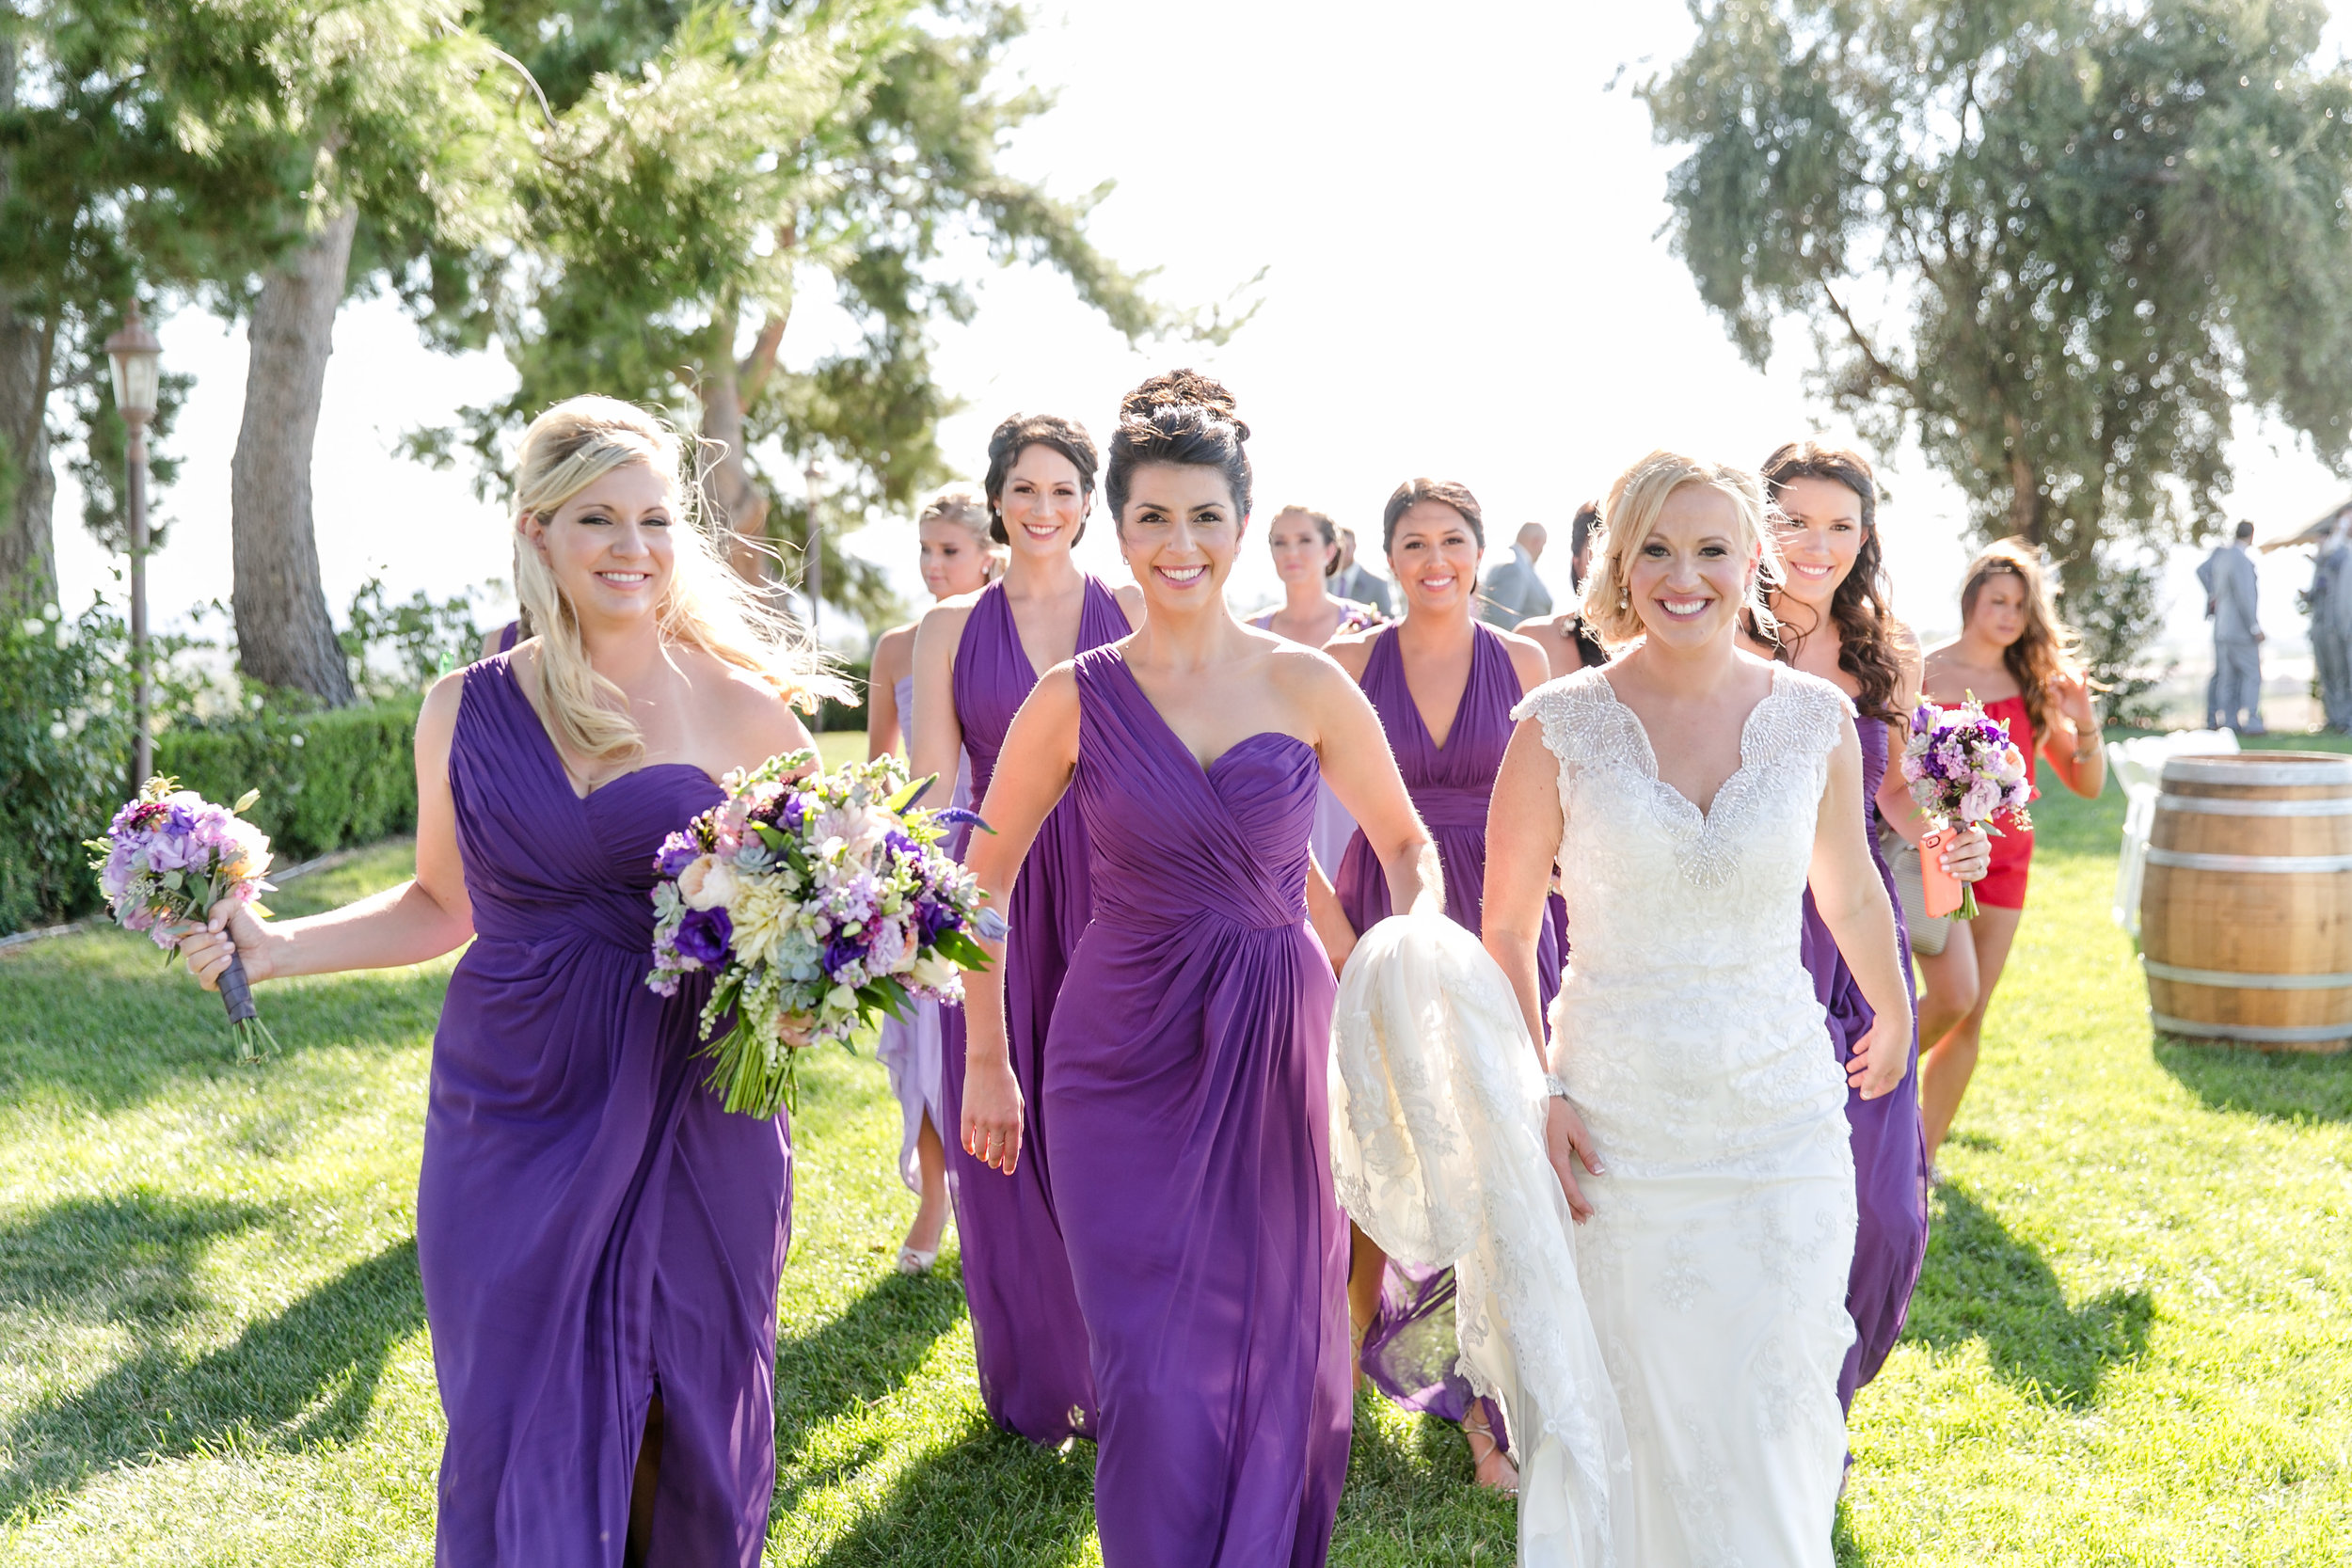 Bridesmaids in Shades  of Purple | Michelle Garibay Events | Leah Marie Photography